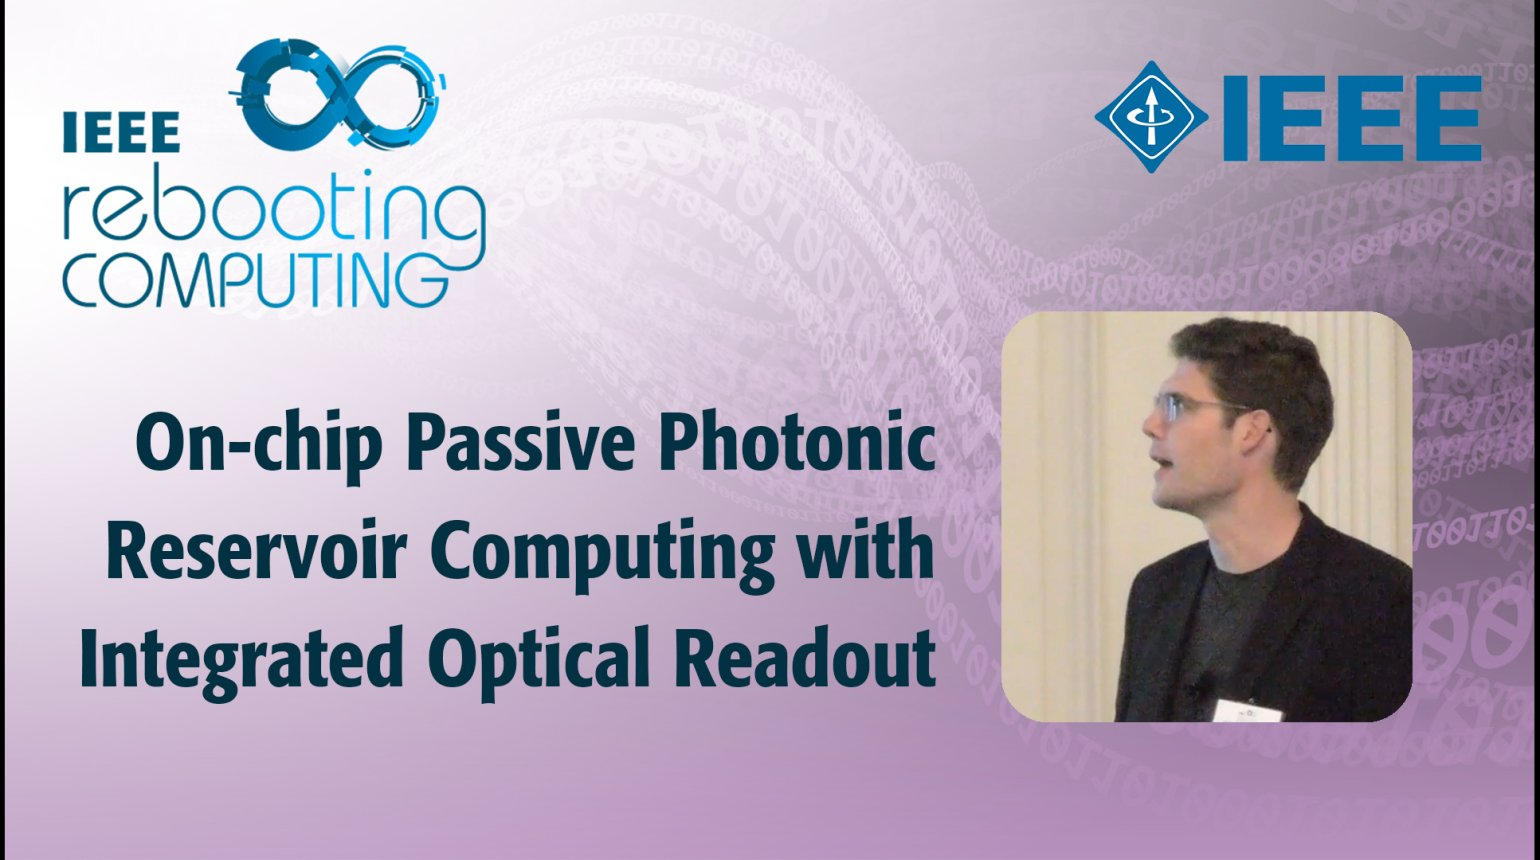 On-chip Passive Photonic Reservoir Computing with Integrated Optical Readout - IEEE Rebooting Computing 2017